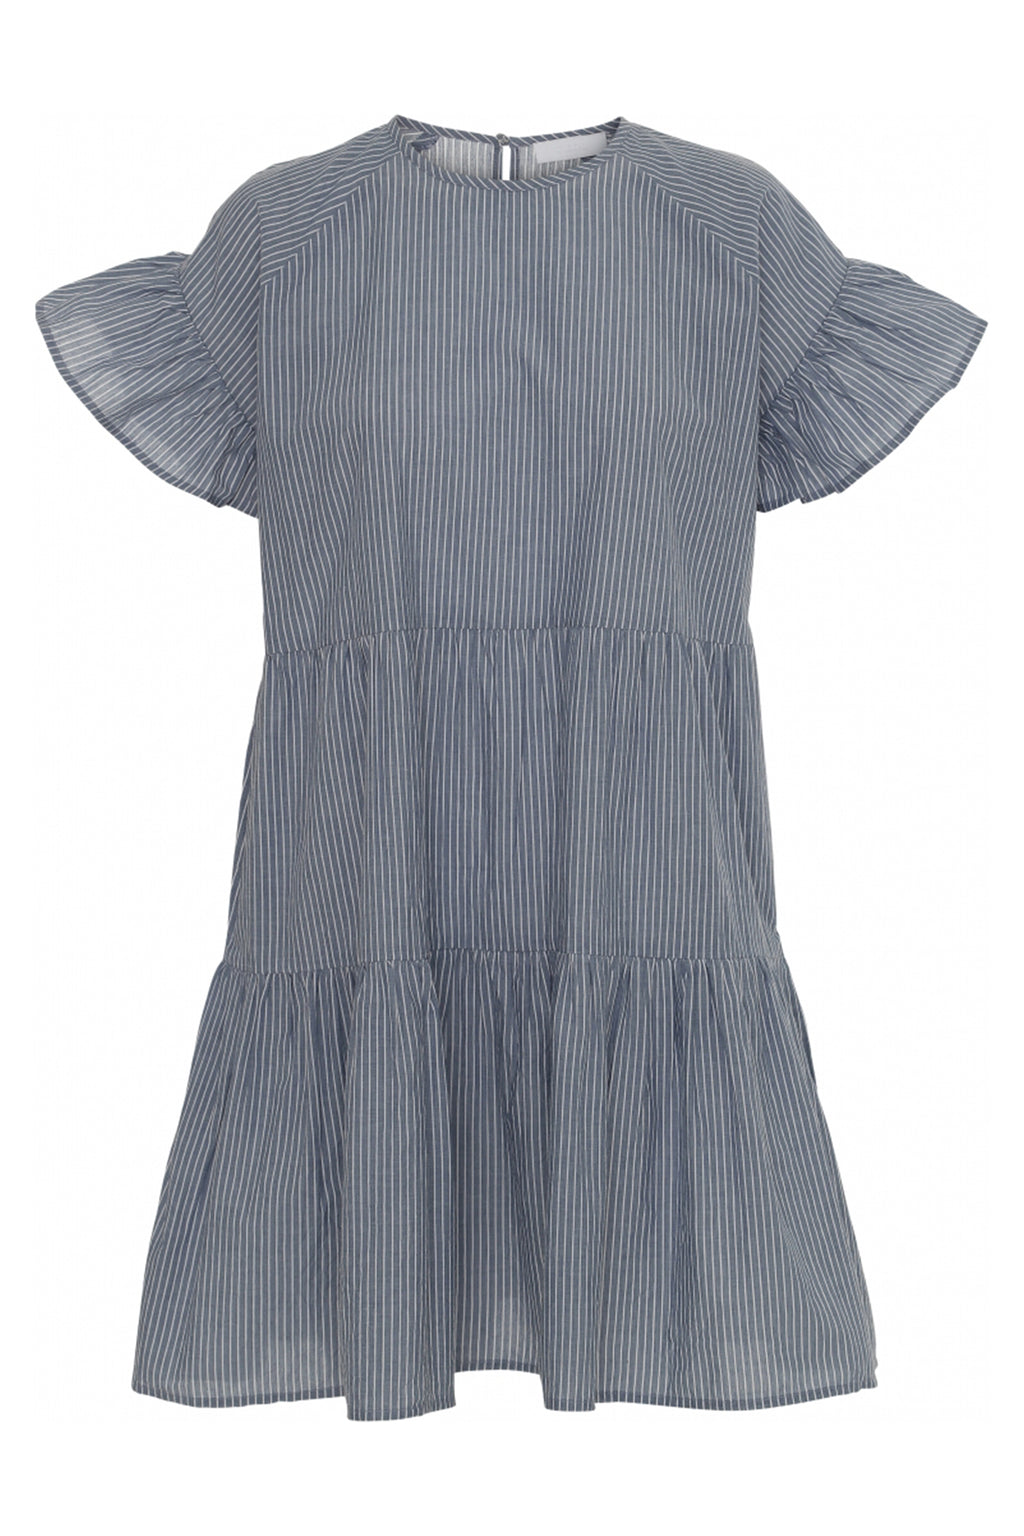 LORETTA - Pin Stripe Dress